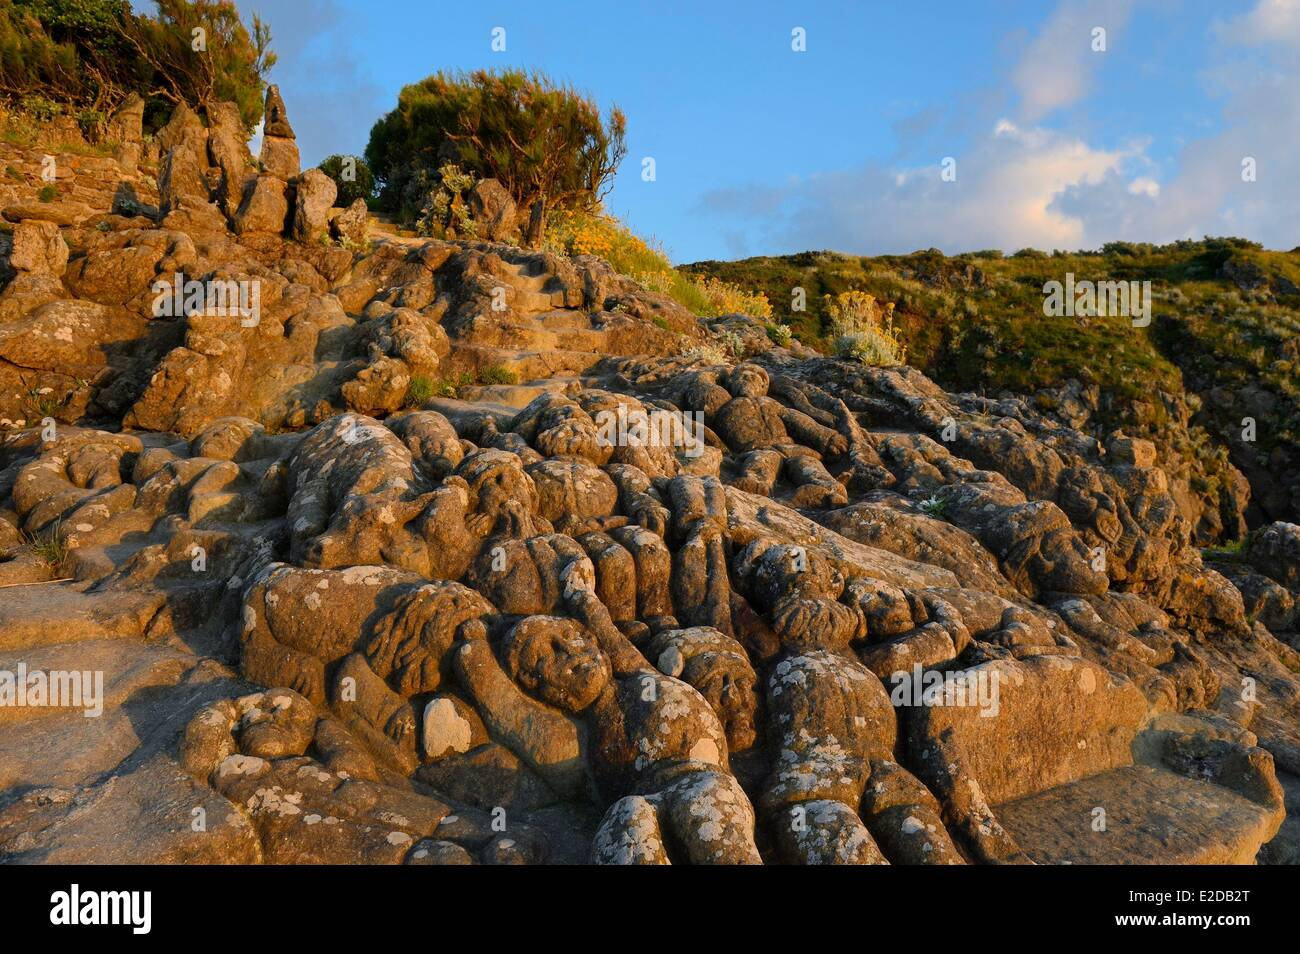 France, Ille et Vilaine, Saint Malo, Rotheneuf, stones sculpted by Foure abbot between 1870 and 1917 - Stock Image